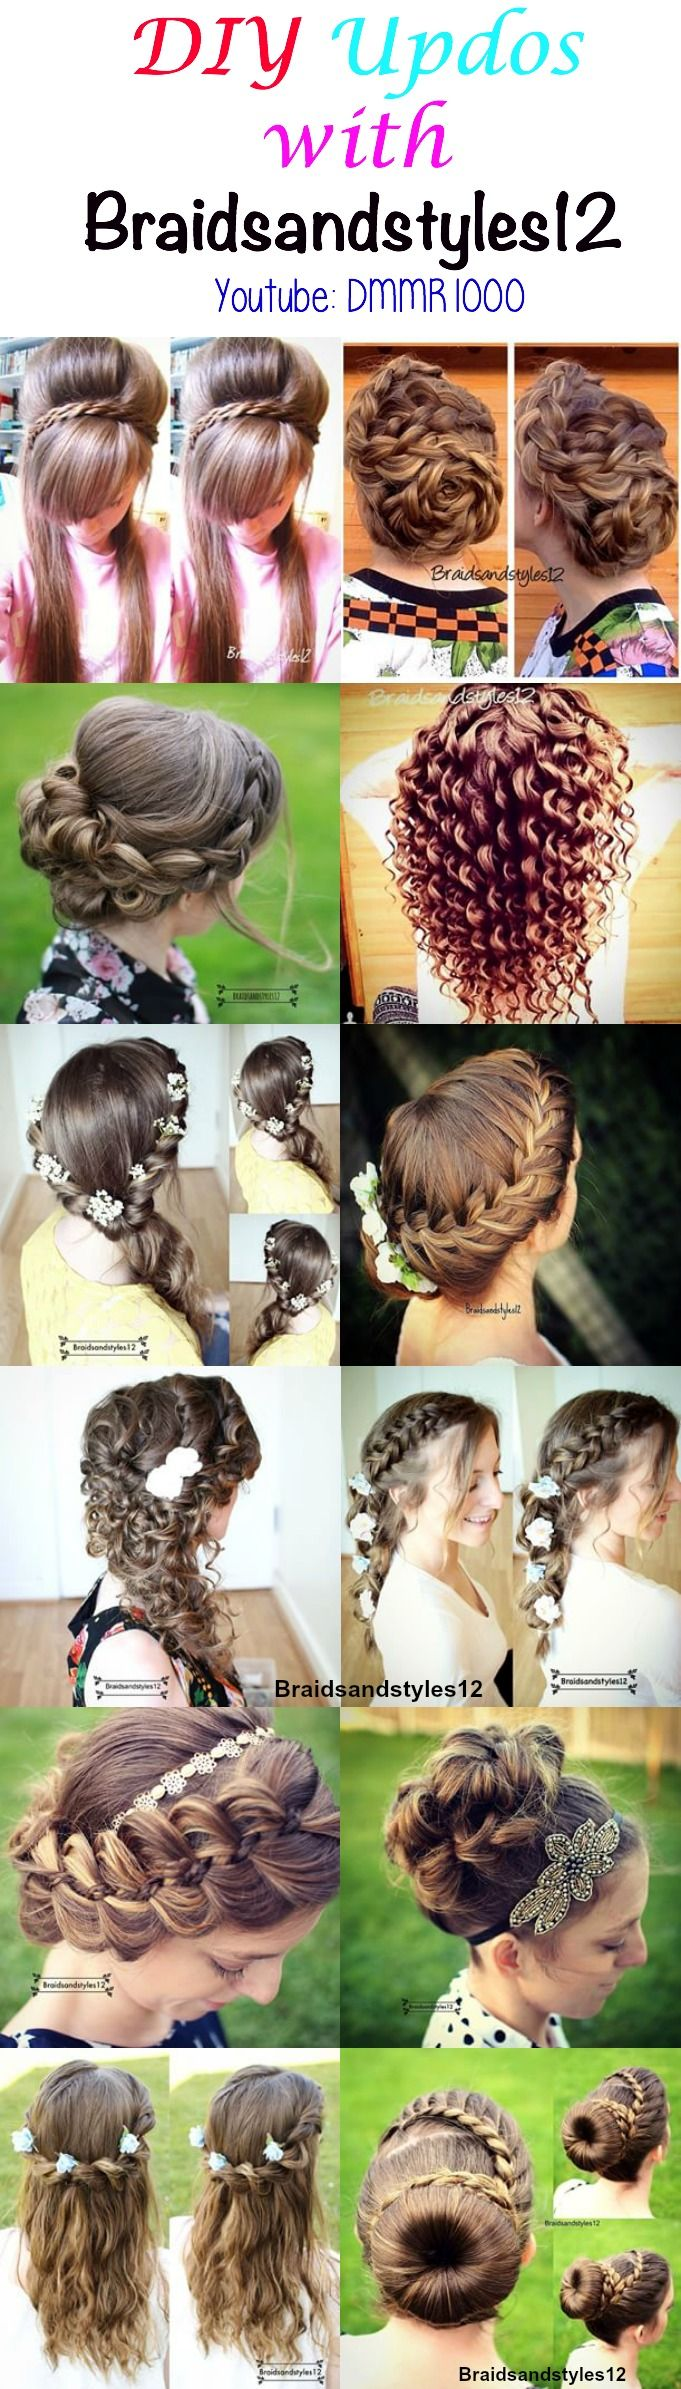 Braidsandstyles Updos Prom And Holidays - Diy updos youtube